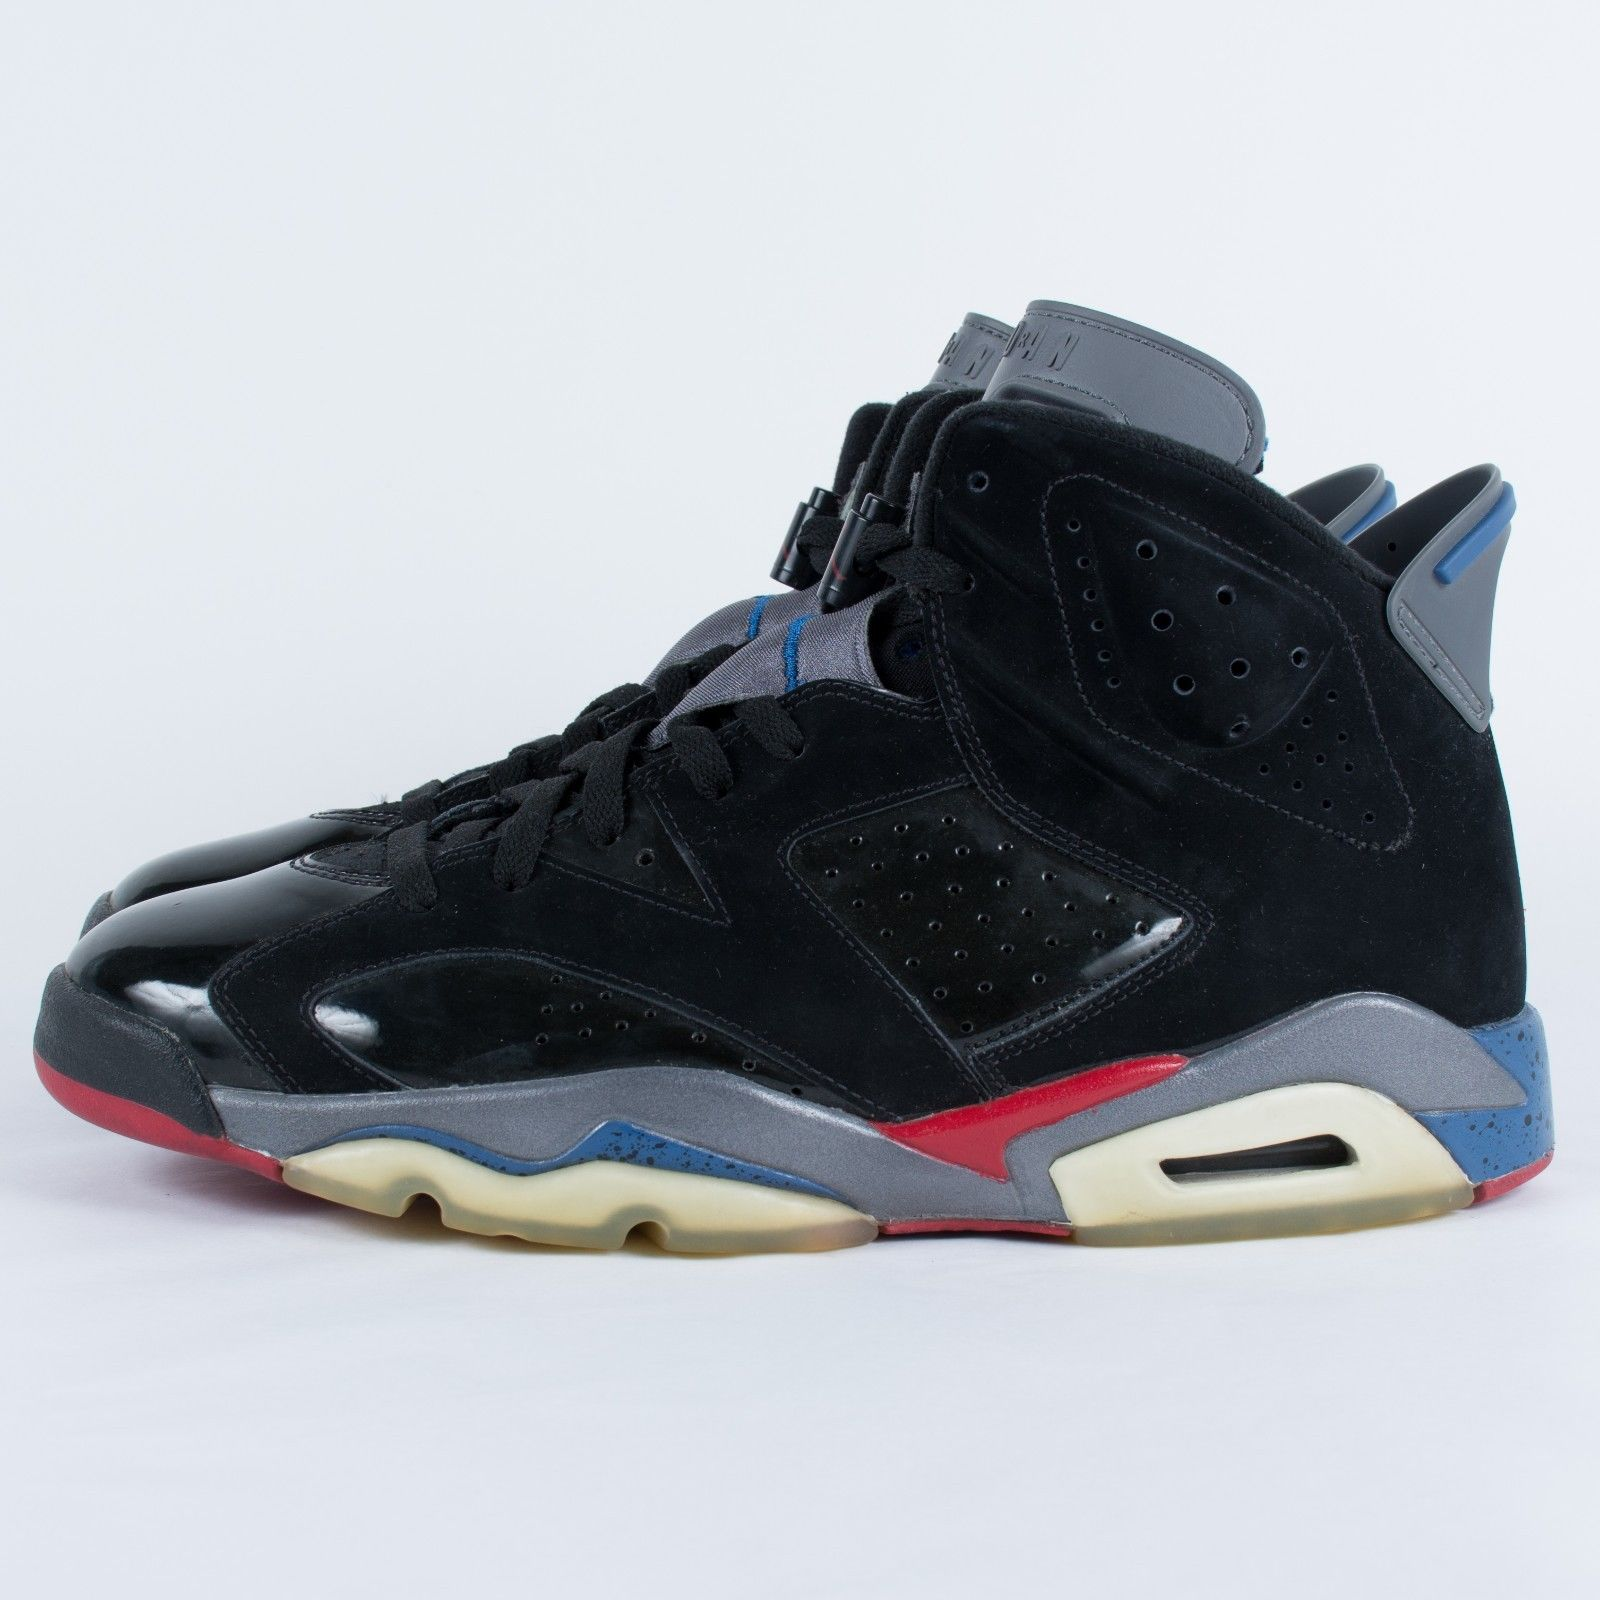 detailing a37ac b8c66 ... NIKE AIR JORDAN 6 RETRO PISTONS BLACK VARSITY RED BLUE 384664 001 WORN  SIZE 10.5 ...